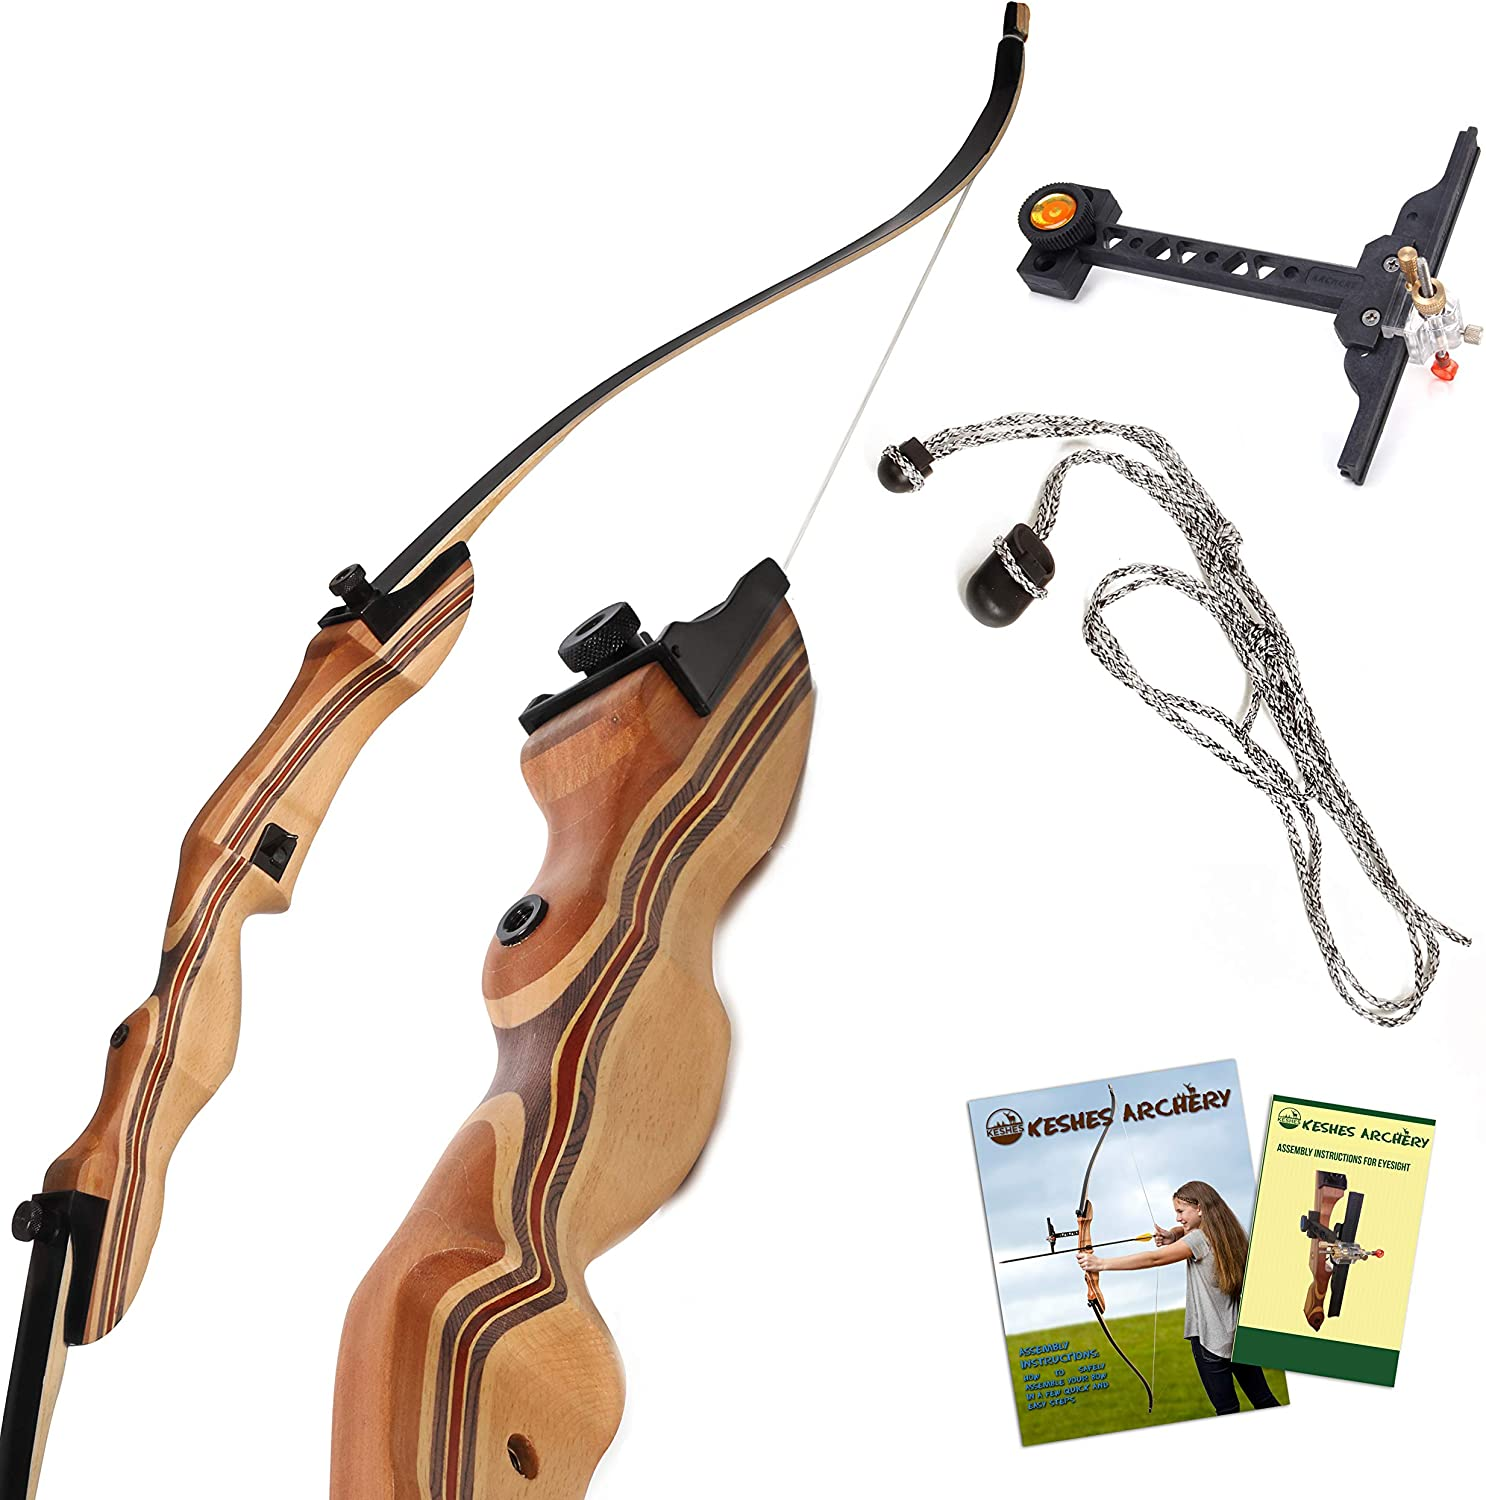 KESHES Takedown Hunting Ultra-Cheap Deals Recurve Bow and Max 74% OFF Arrow Archery 62 f -